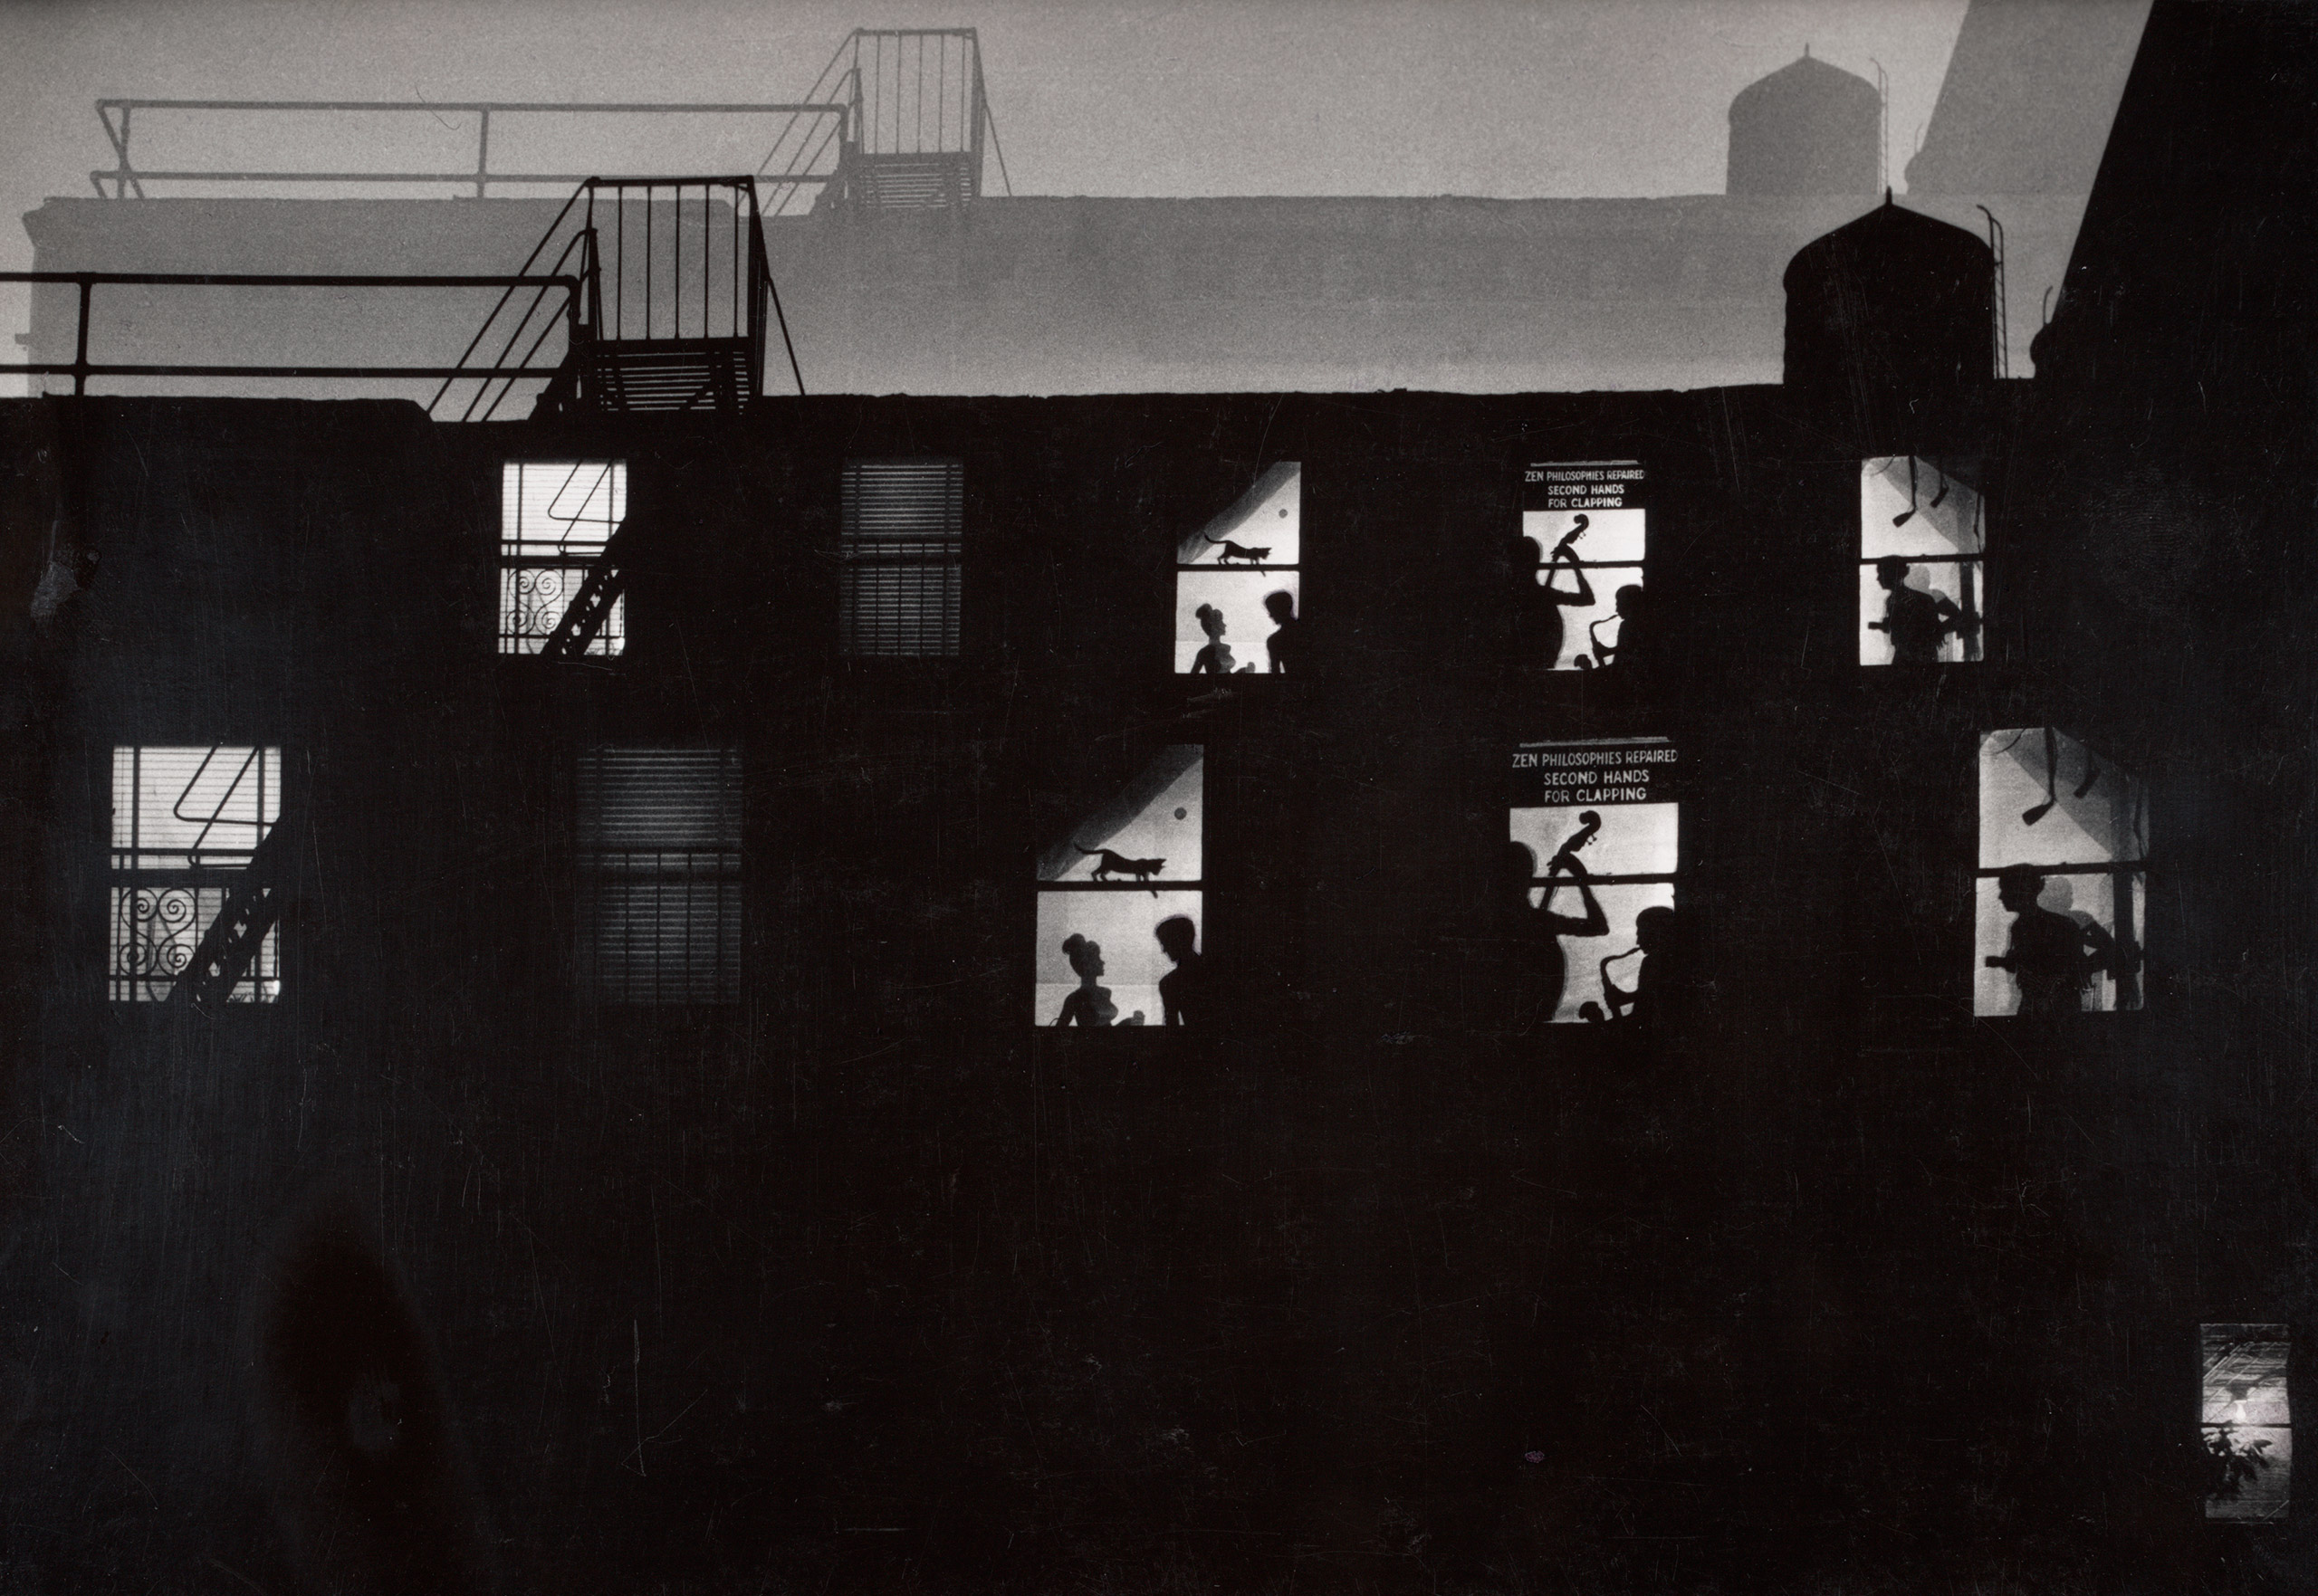 An experimental loft photo with added cut-out silhouettes in the windows.